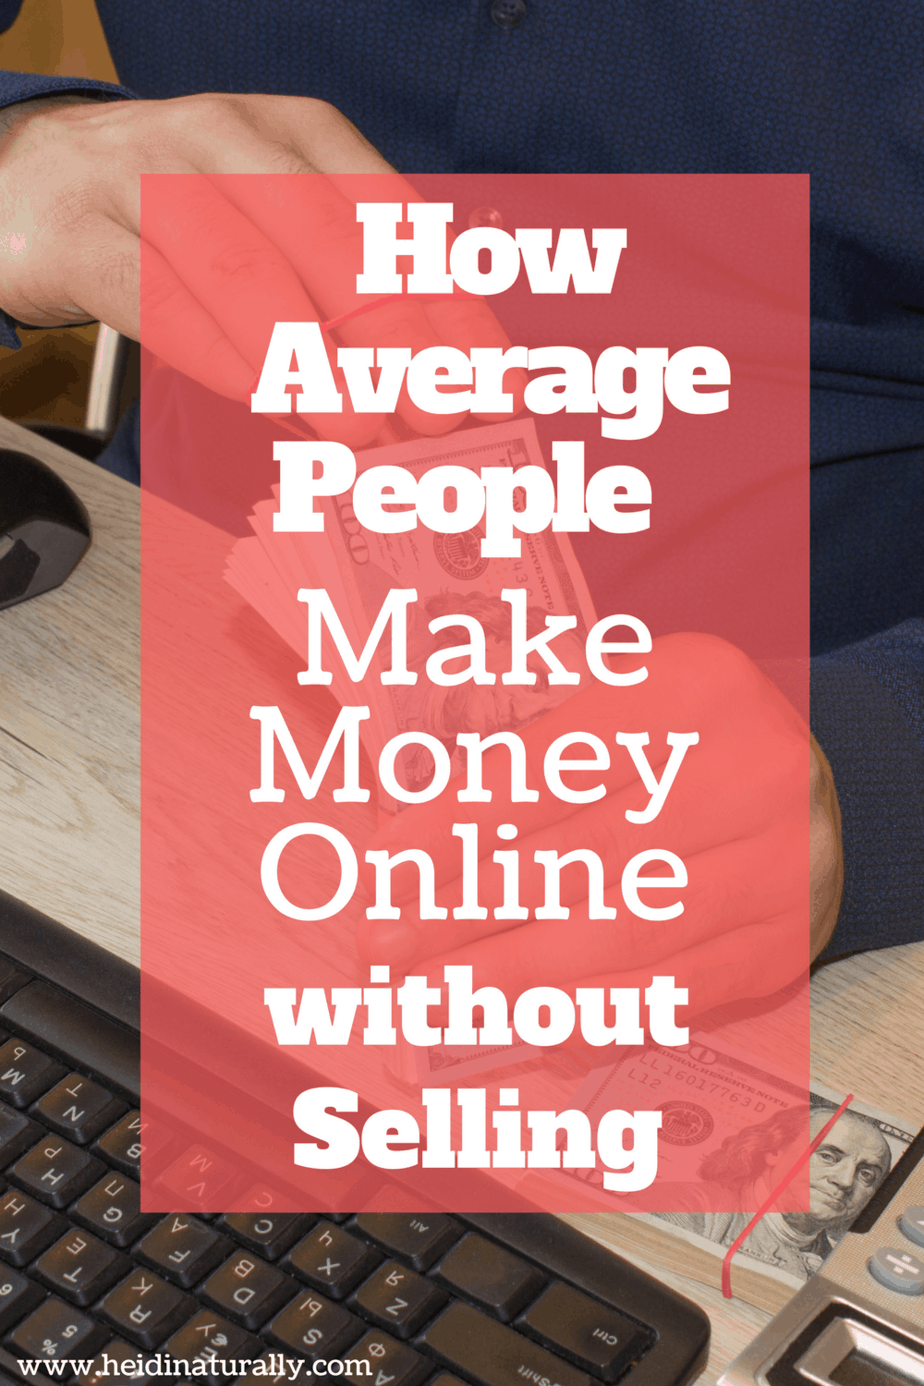 Find out how average people make money online without selling or bugging their friends. Use this proven strategy and see your money grow every day without fail!